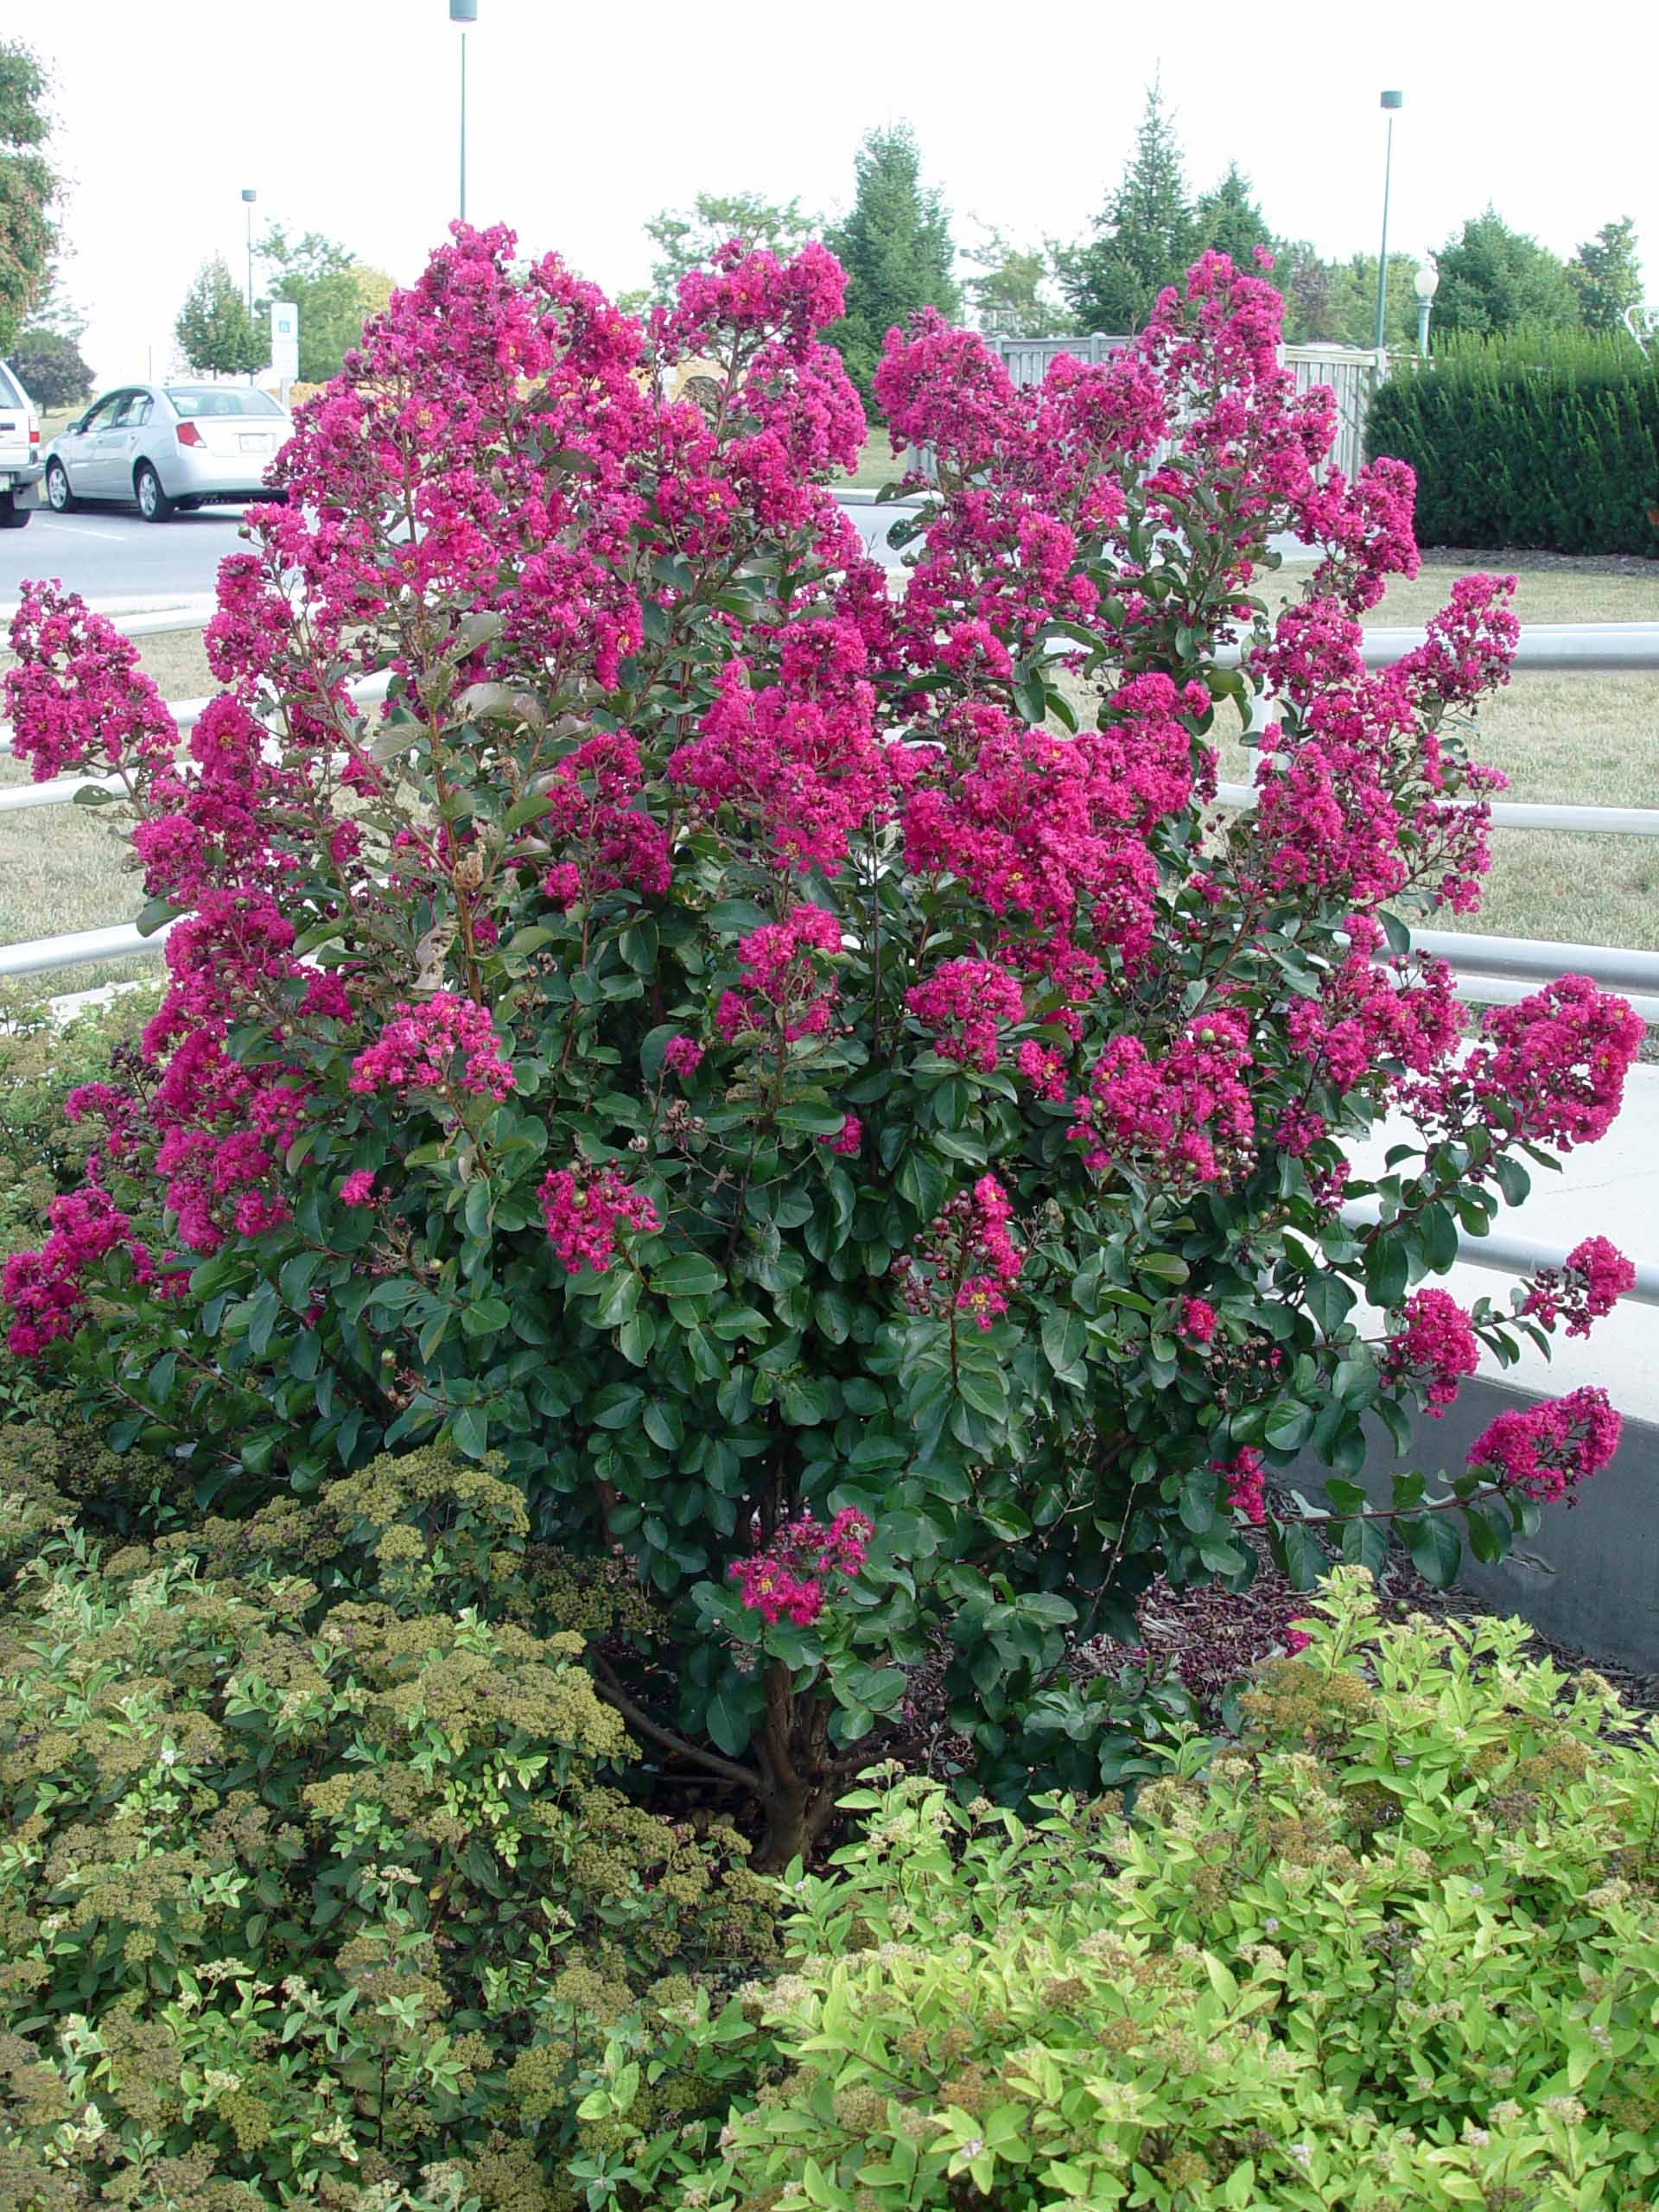 Crape Myrtle Tree Or Shrub Low Maintenance Blooms All Summer Crape Myrtle Landscaping Retaining Walls Myrtle Tree